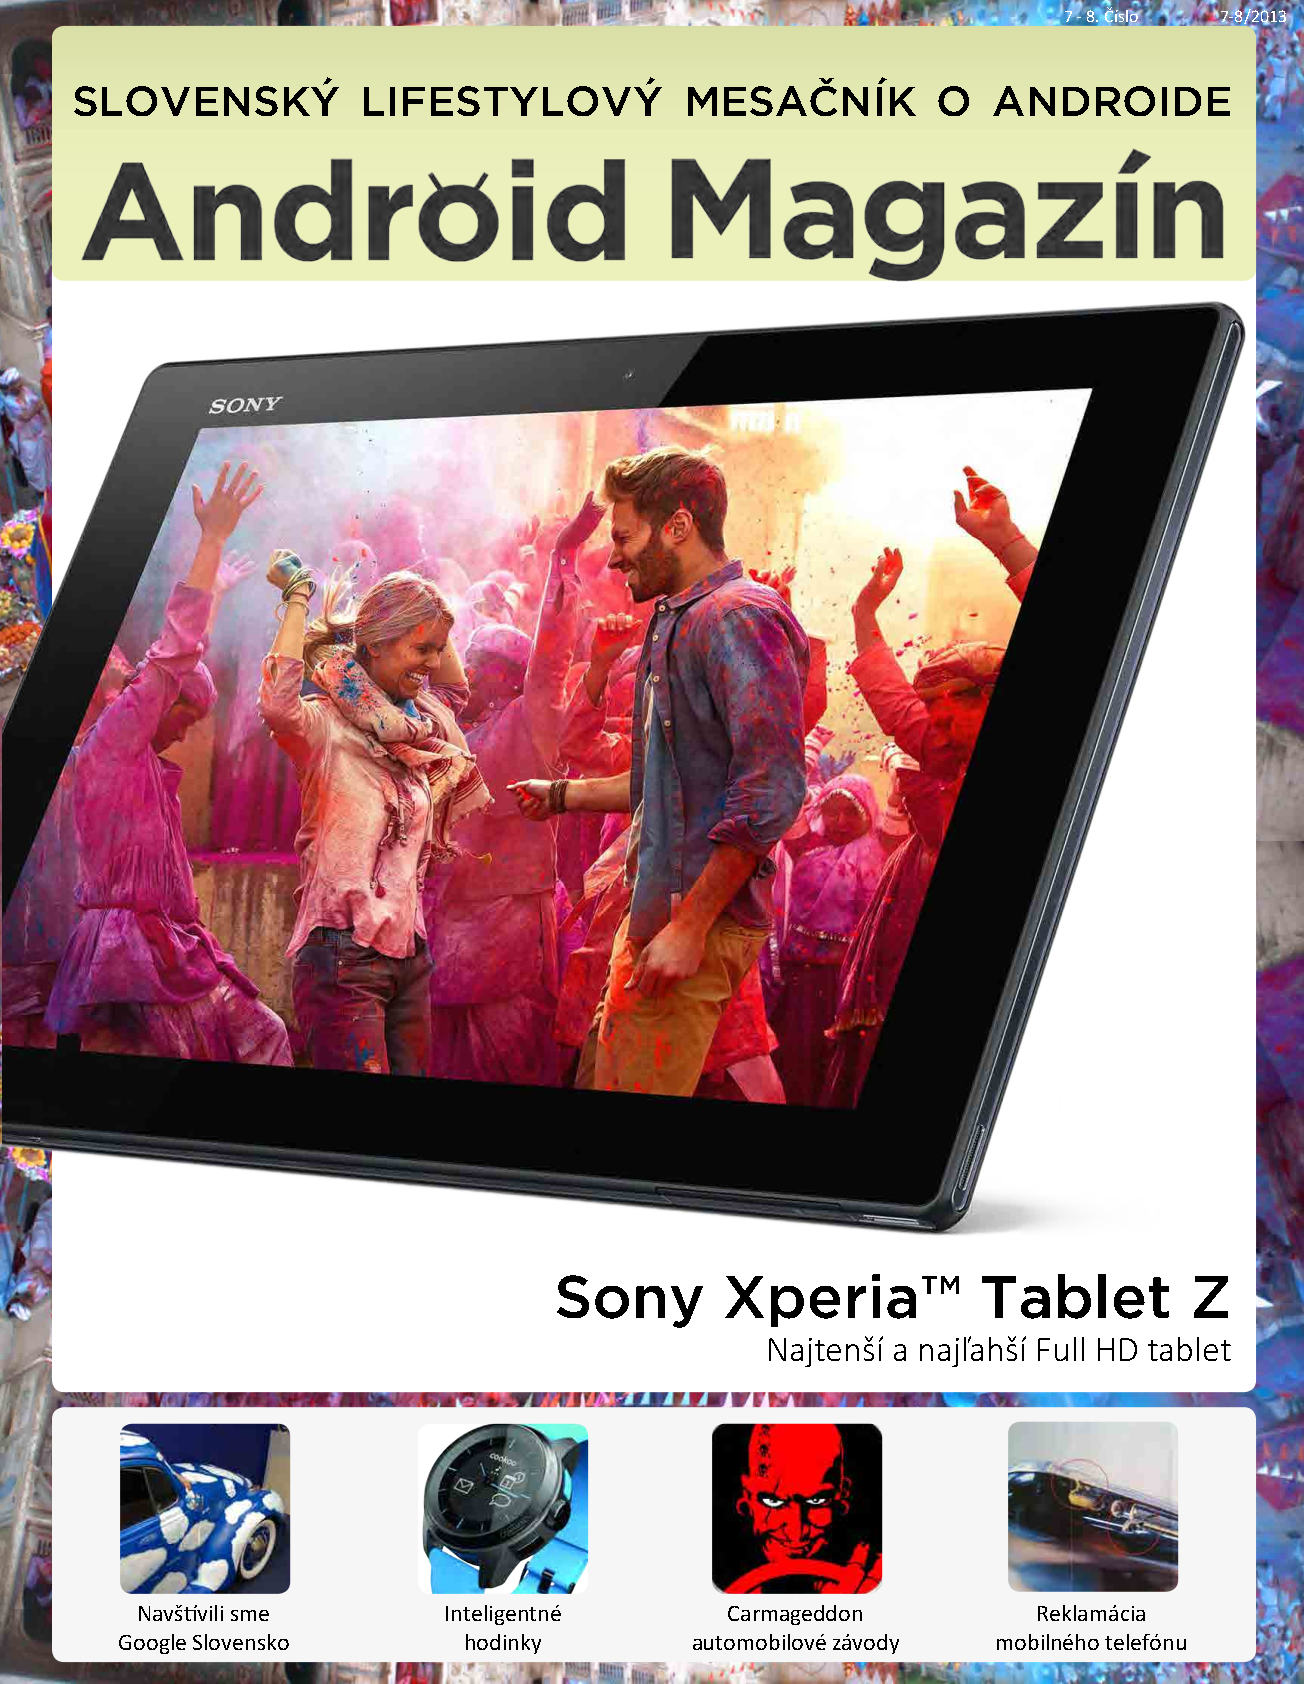 Android Magazin 07 08 2013